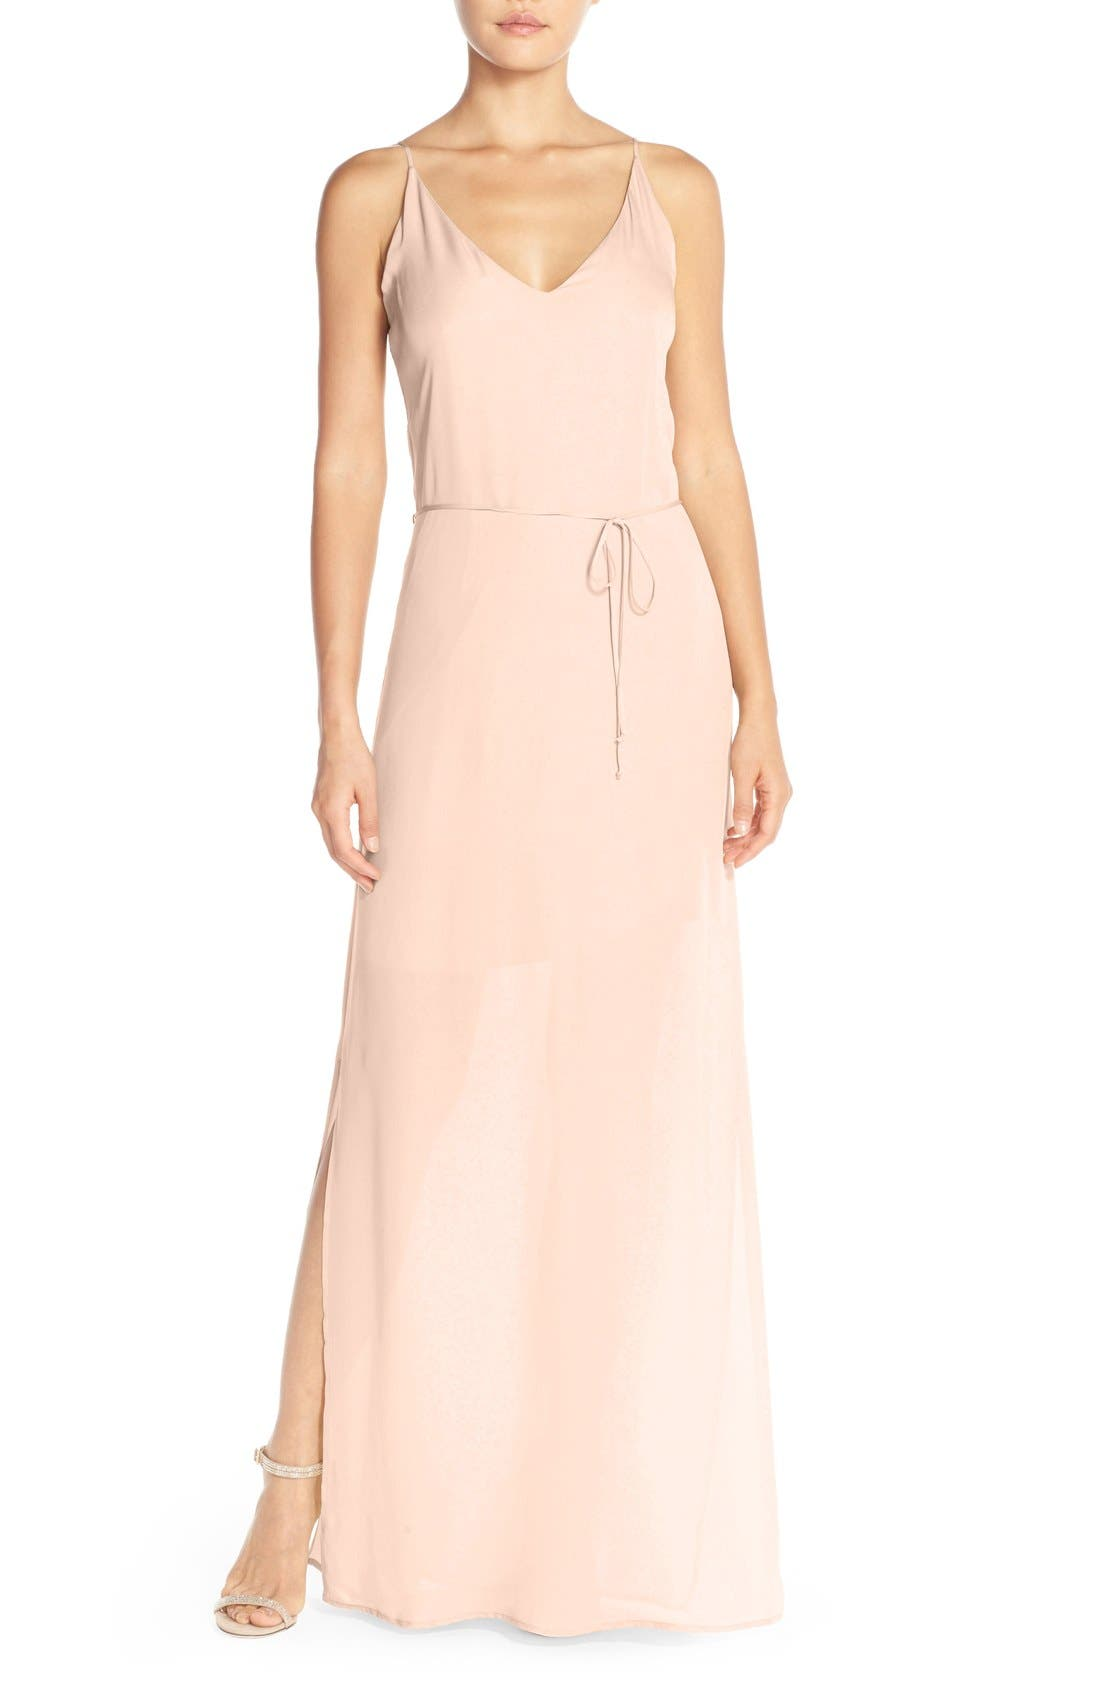 MAIDS Rory Beca 'Harlow' Belted Silk Georgette Deep V-Back Gown